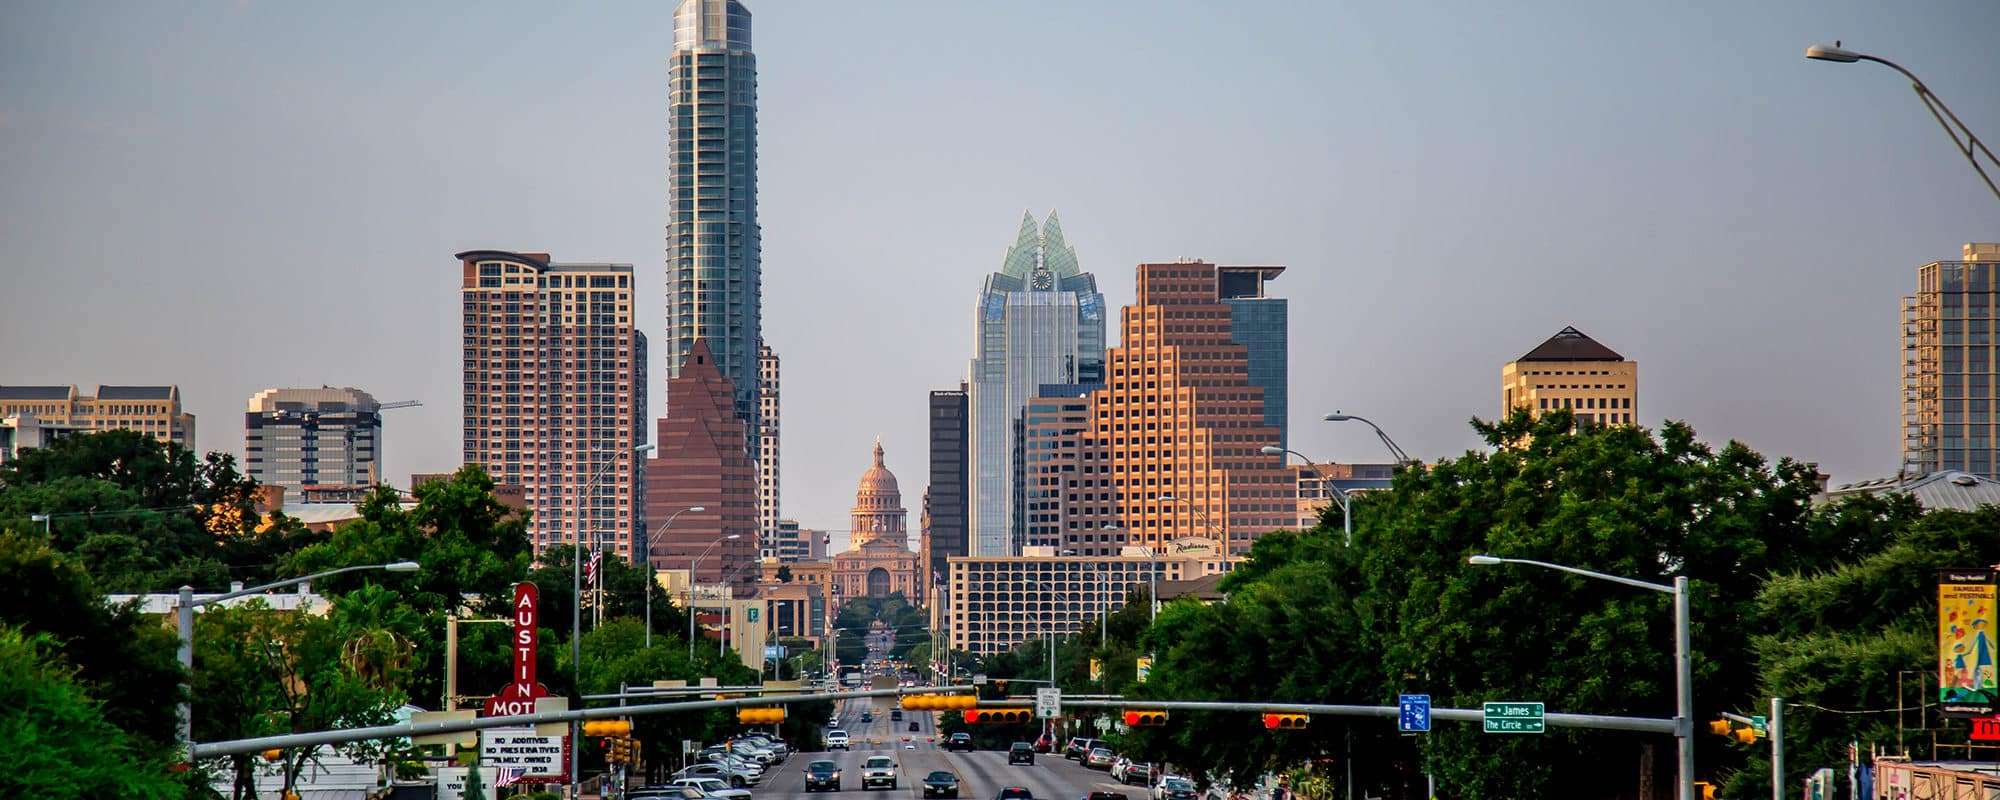 South Congress Avenue - Austin, TX